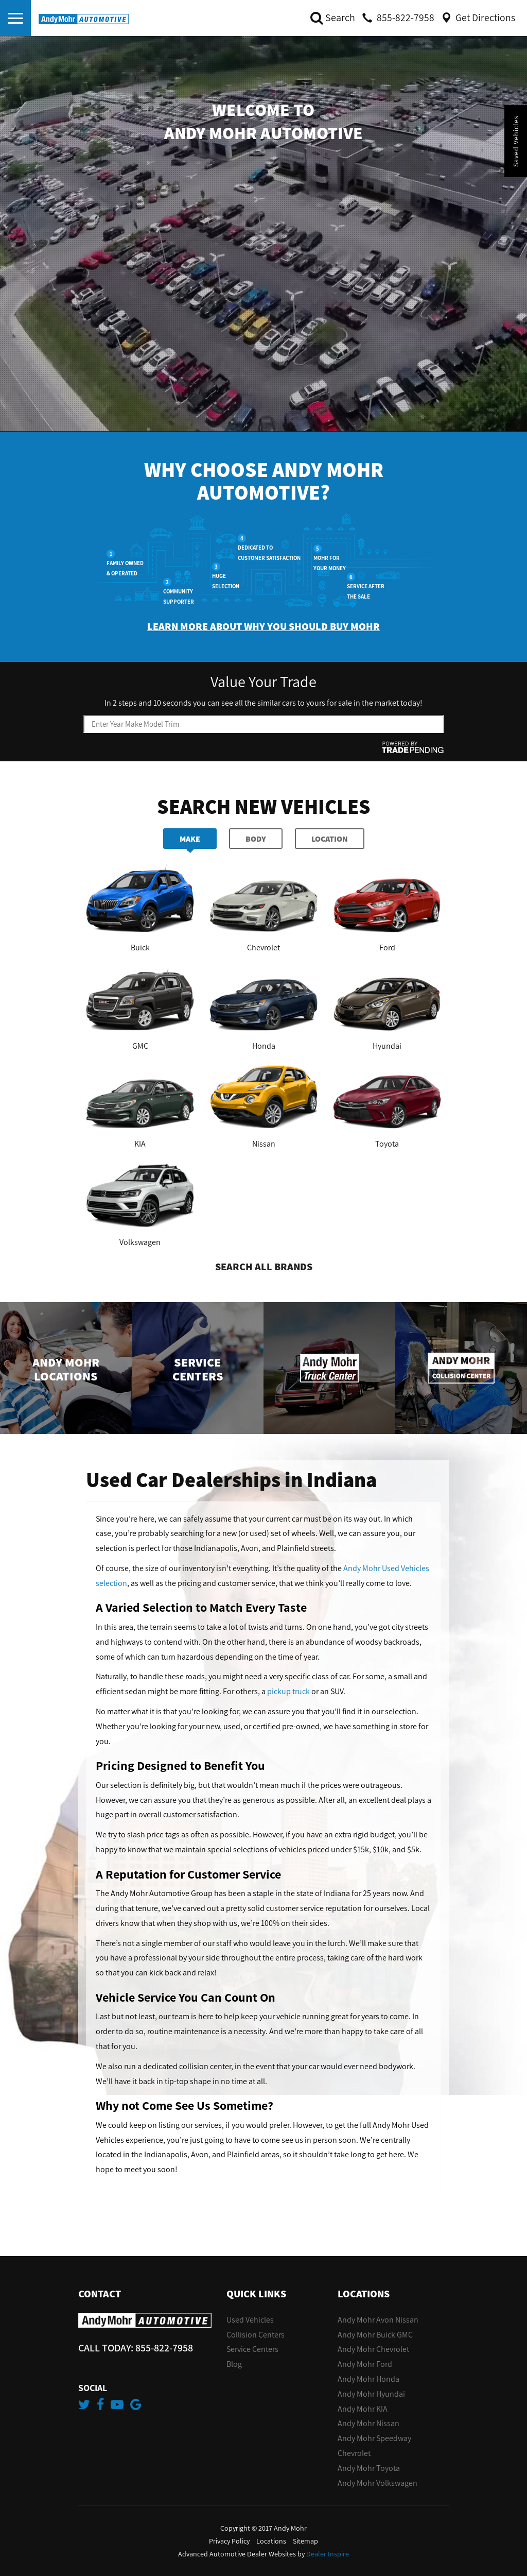 Andy Mohr Nissan | 2019-2020 New Car Reviews